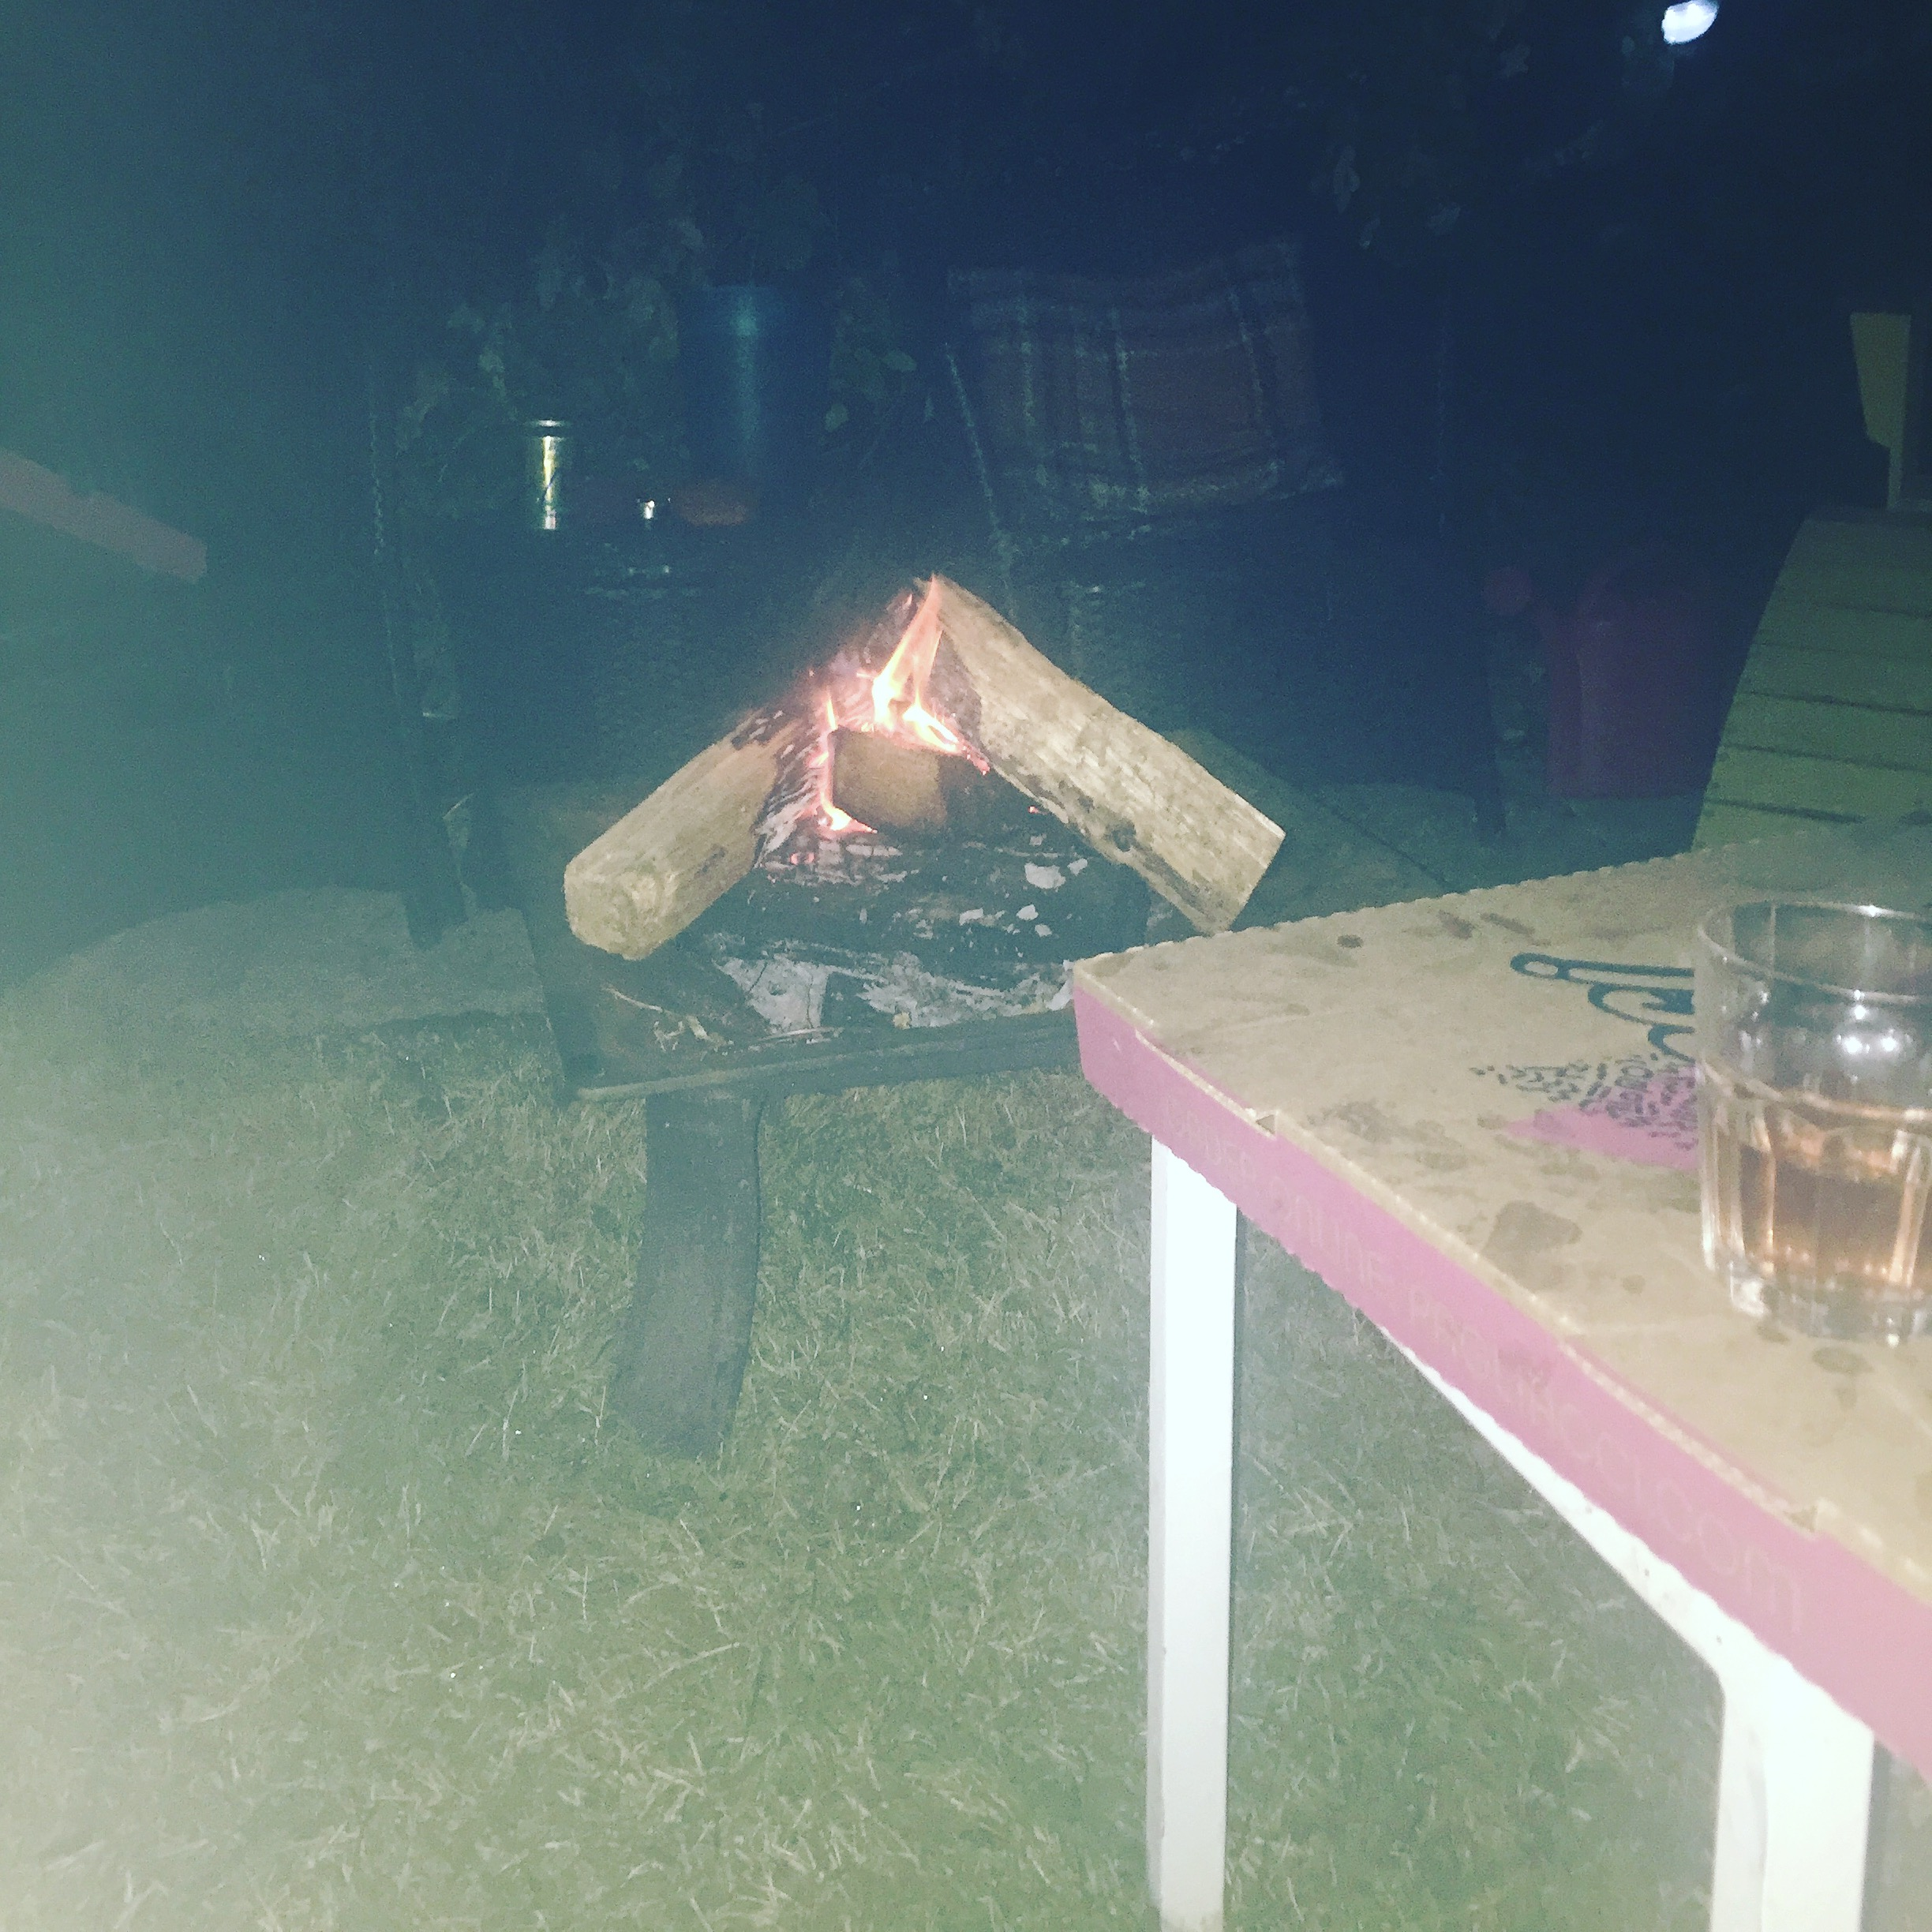 My little bonfire. I even chopped the wood myself! Peep the greasy pizza box and glass of wine in the corner. Lol